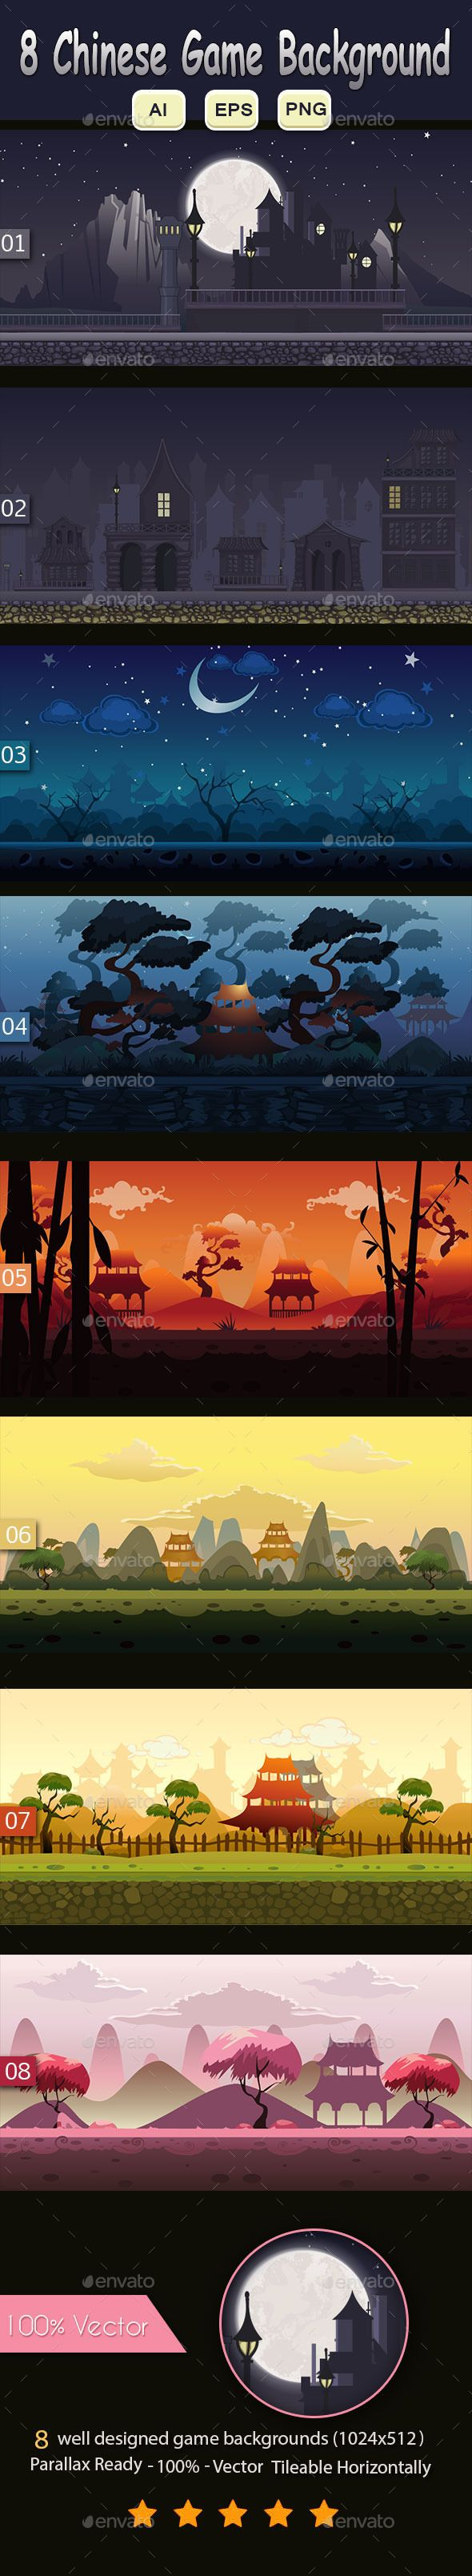 8 Chinese Game Background — Vector EPS #platformer #asset • Download here → https://graphicriver.net/item/8-chinese-game-background/9835319?ref=pxcr